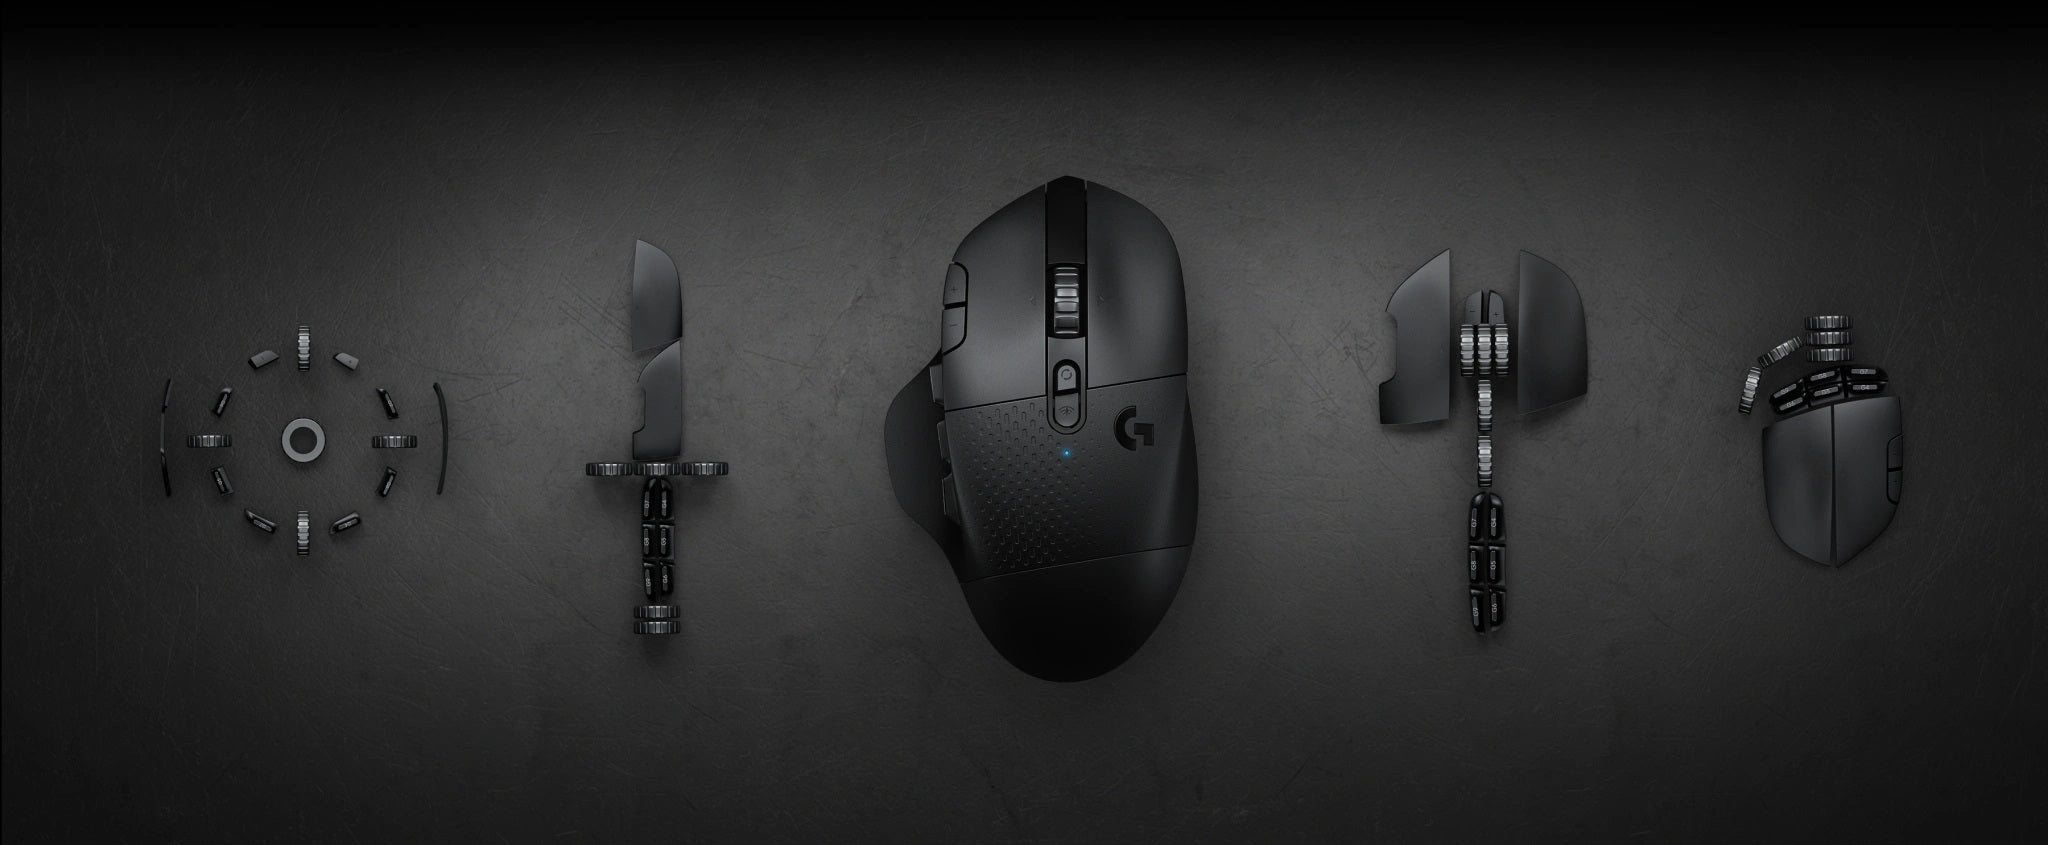 MAKE YOUR PLAY - Your power, your control. Conquer MOBA, MMO, and Battle Royale gameplay with the strategically designed G604 LIGHTSPEED Wireless Gaming Mouse. 15 programmable controls join forces with ultra-fast LIGHTSPEED dual connectivity and the class-leading HERO 25K sensor. It's a multifaceted battle weapon that lets you play longer, play better, and make your play.